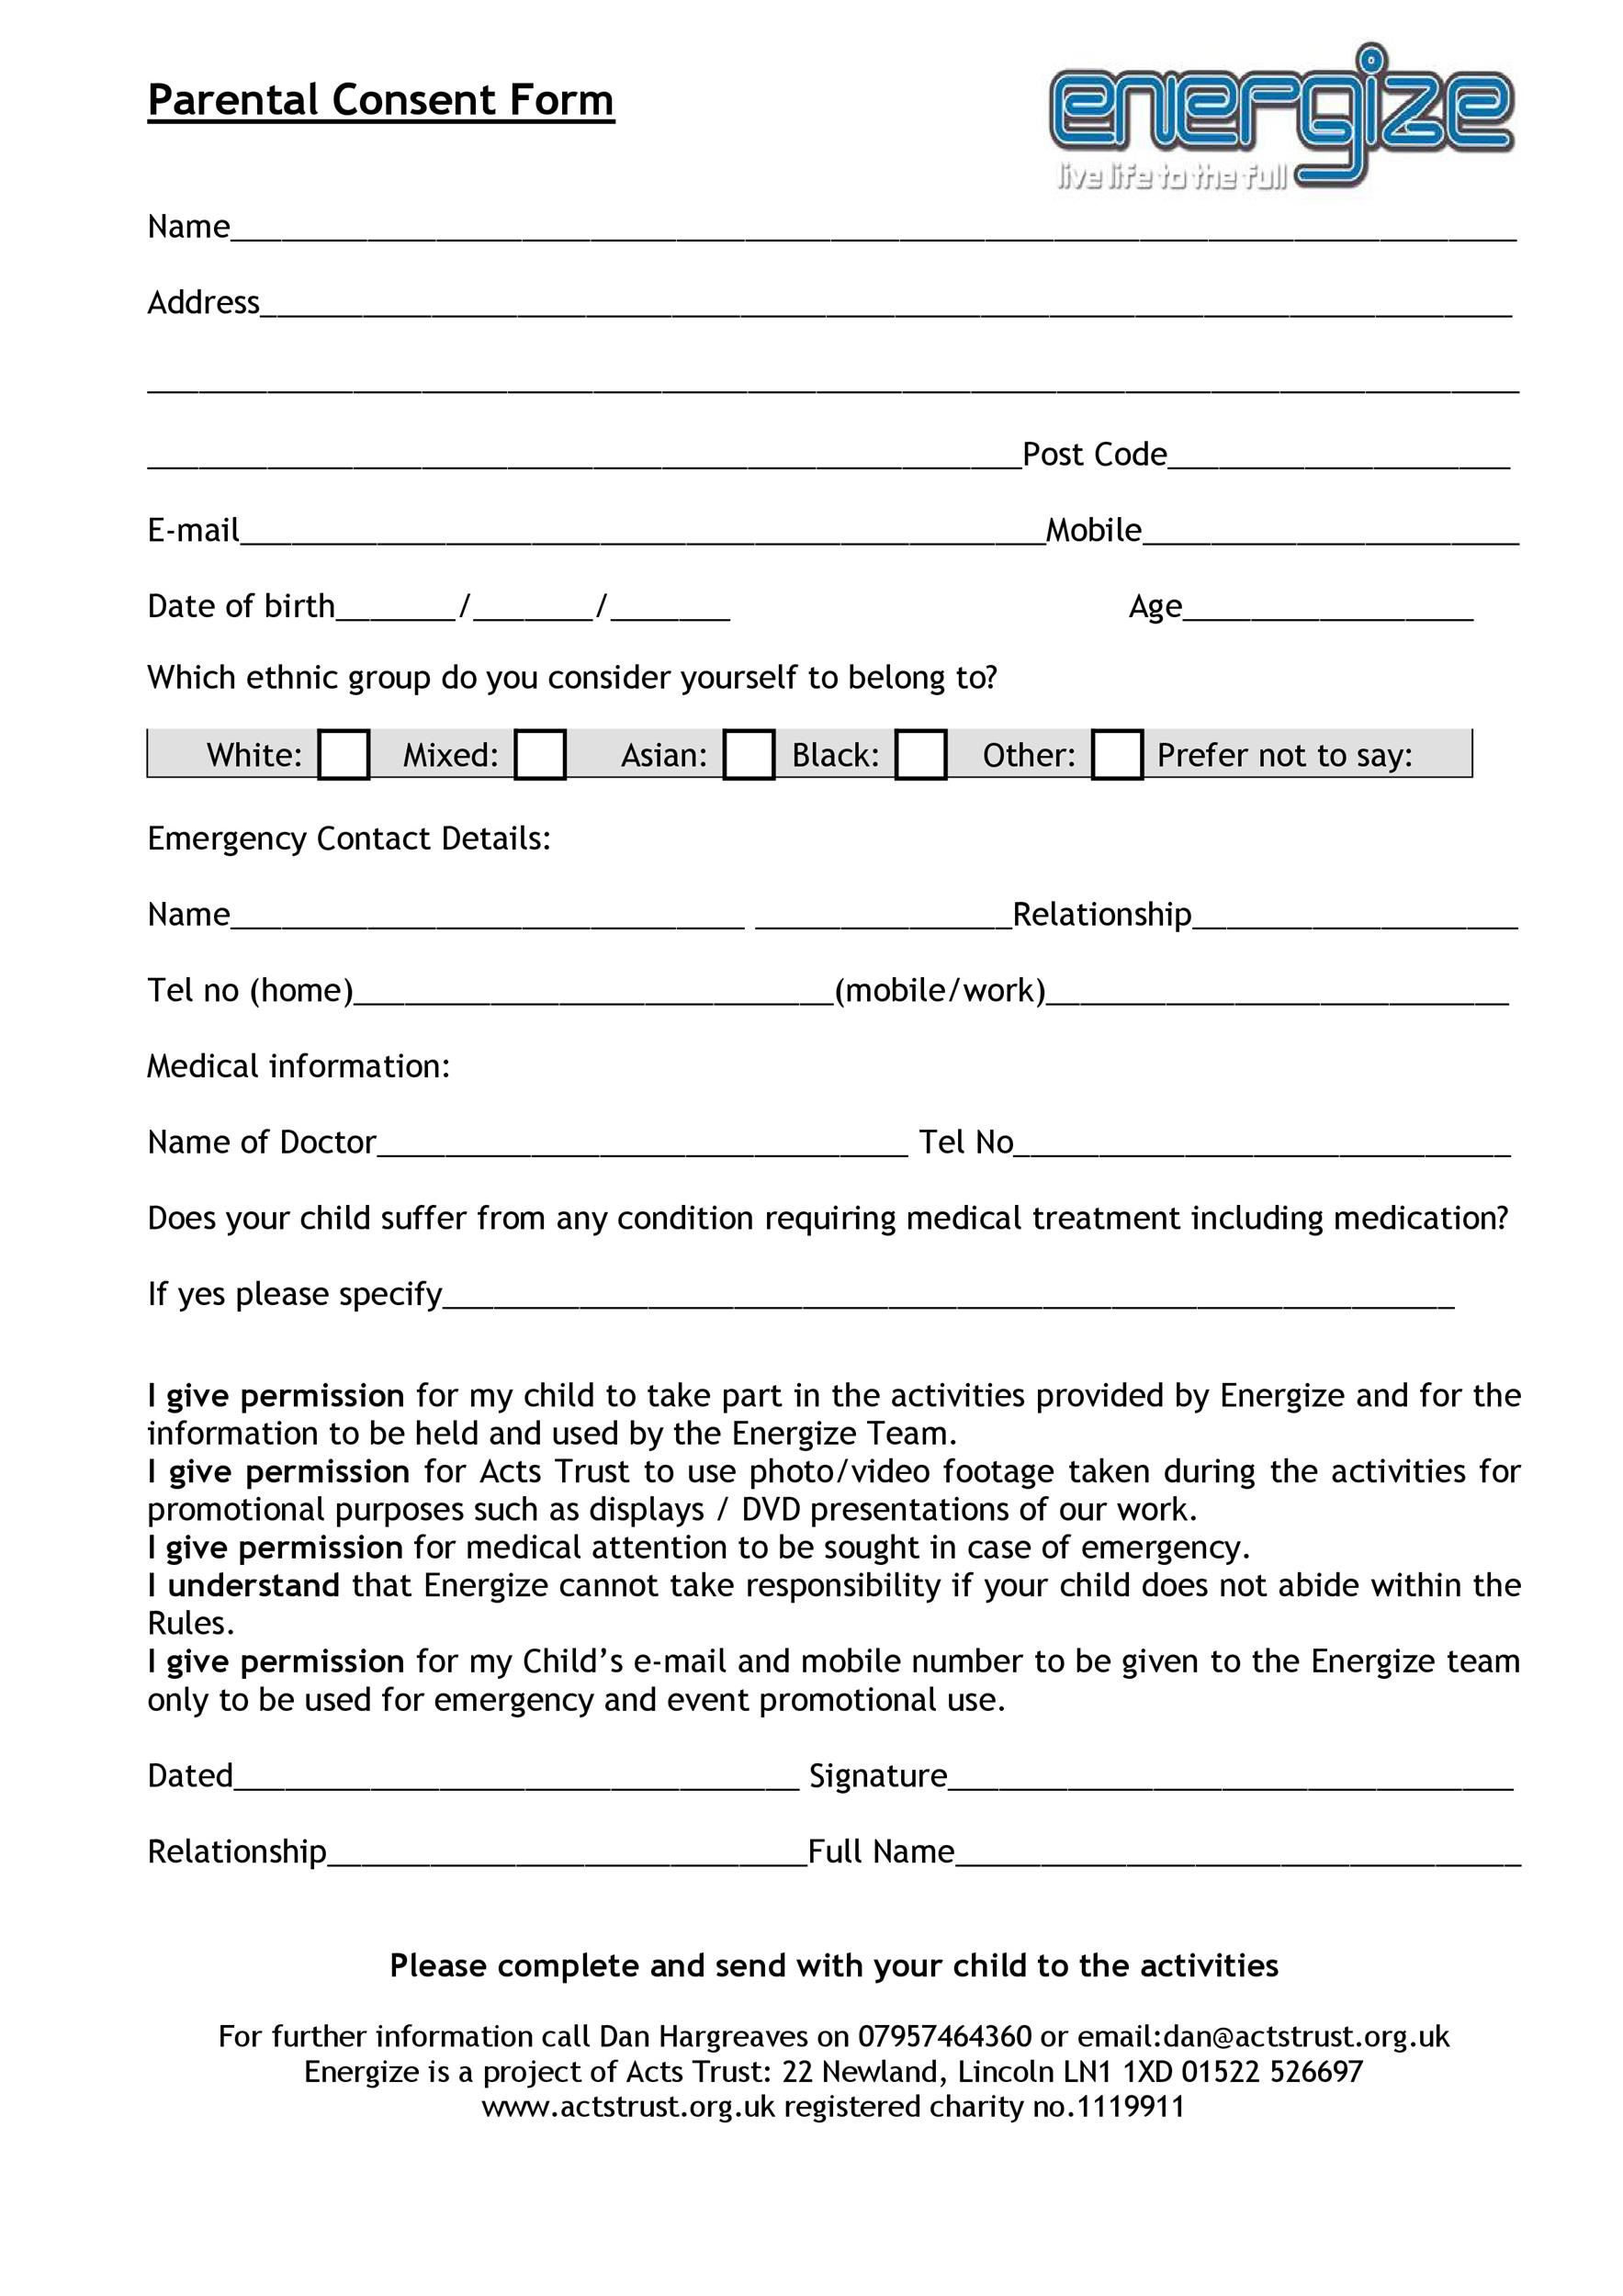 008 Phenomenal Medical Consent Form Template Example  Templates Informed Sample South Africa TreatmentFull